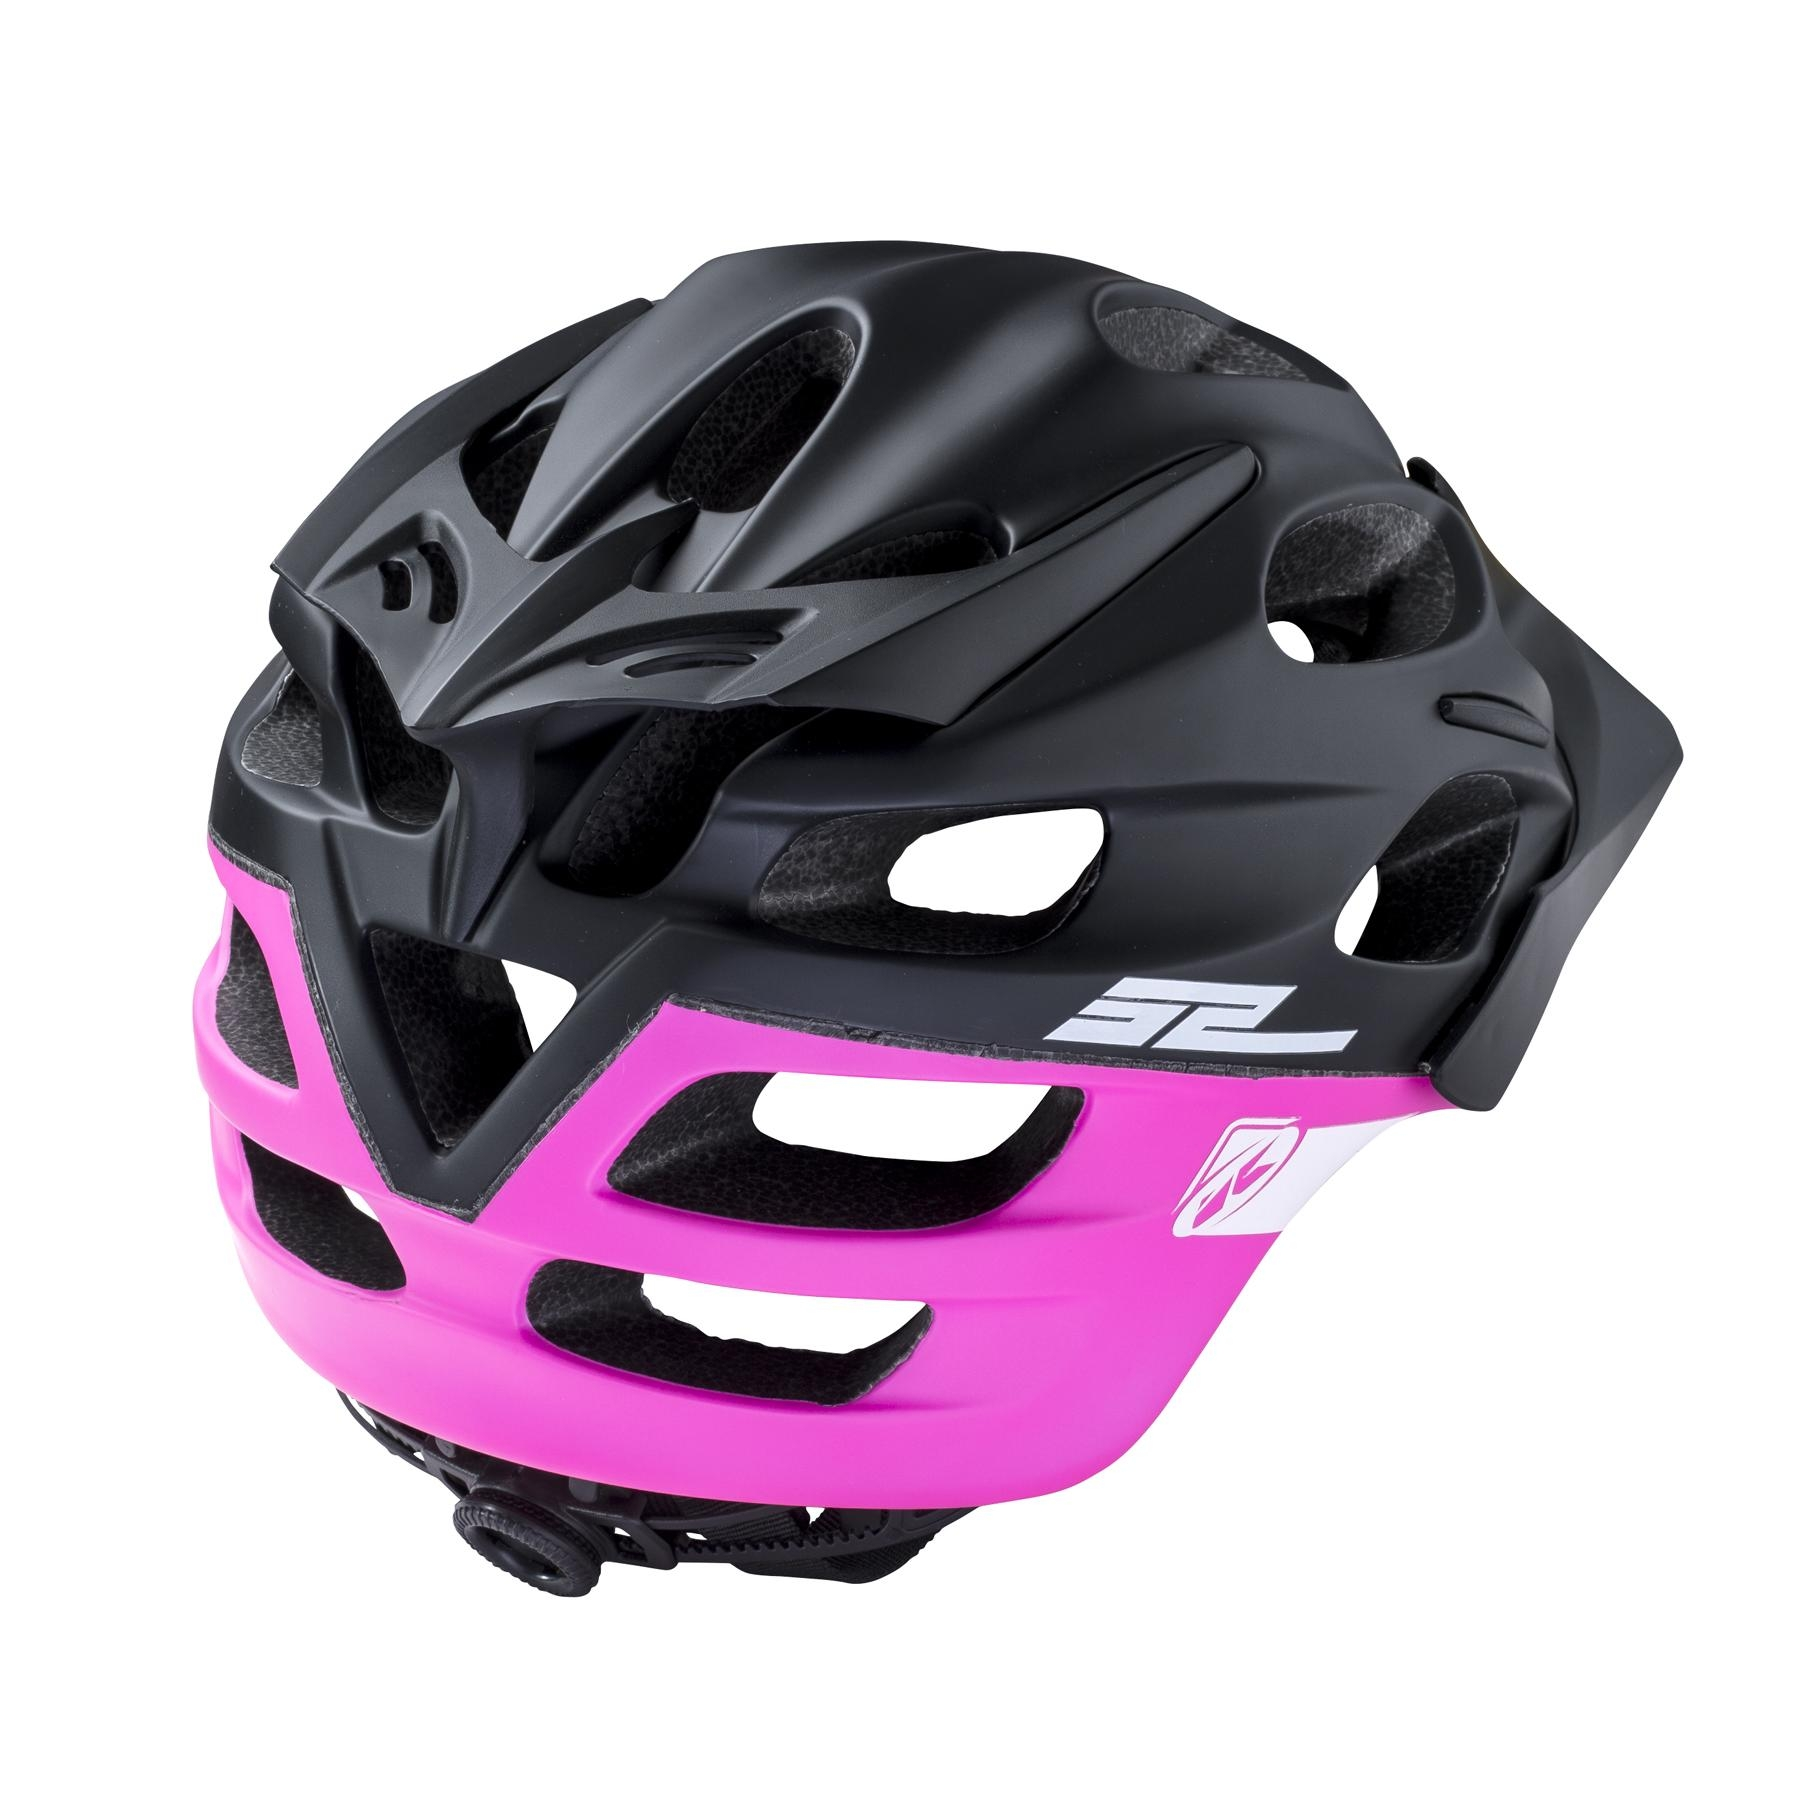 Casque Black Kenny Pink S2 Vtt Enduro lFcK1J